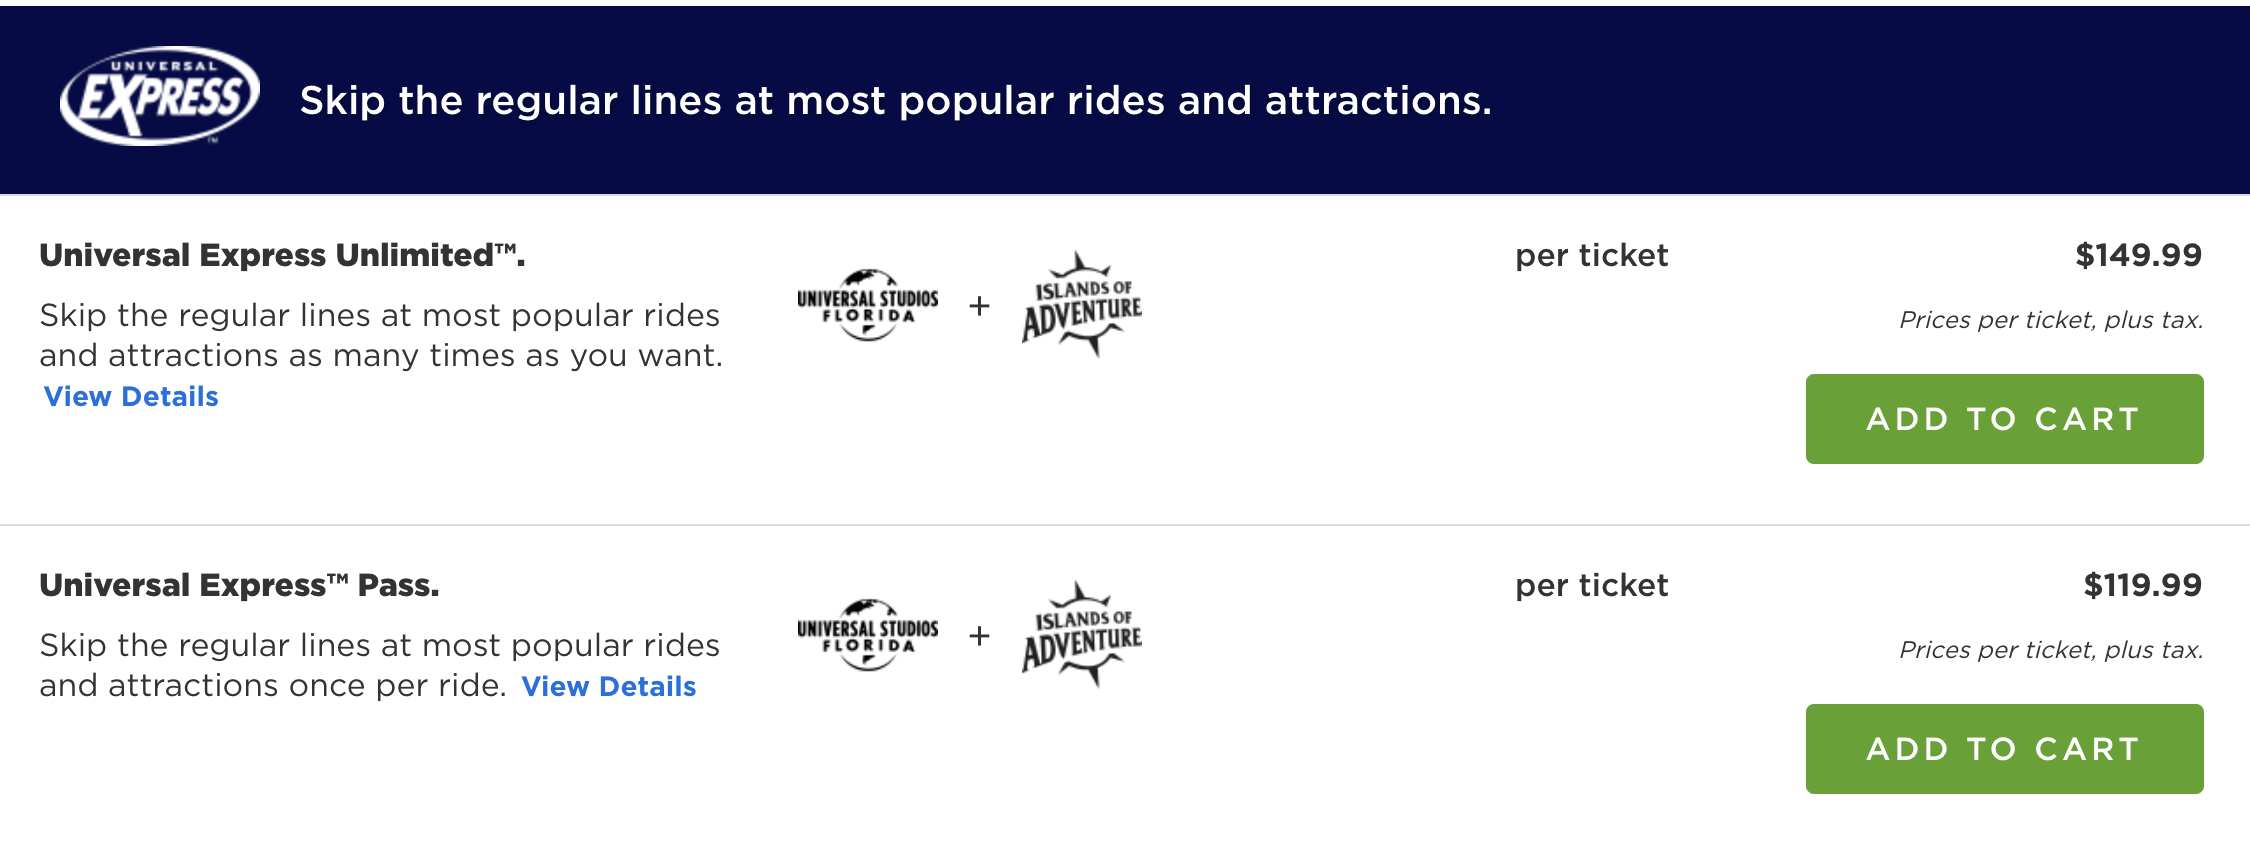 Universal Express Pass sticker shock - those prices are per person